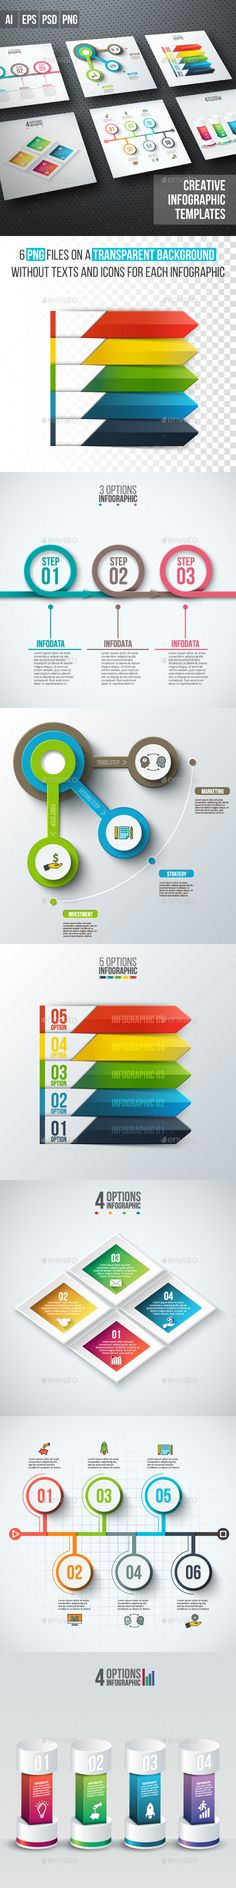 Business Infographic Diagrams Templates PSD, Transparent PNG, Vector EPS, AI Illustrator